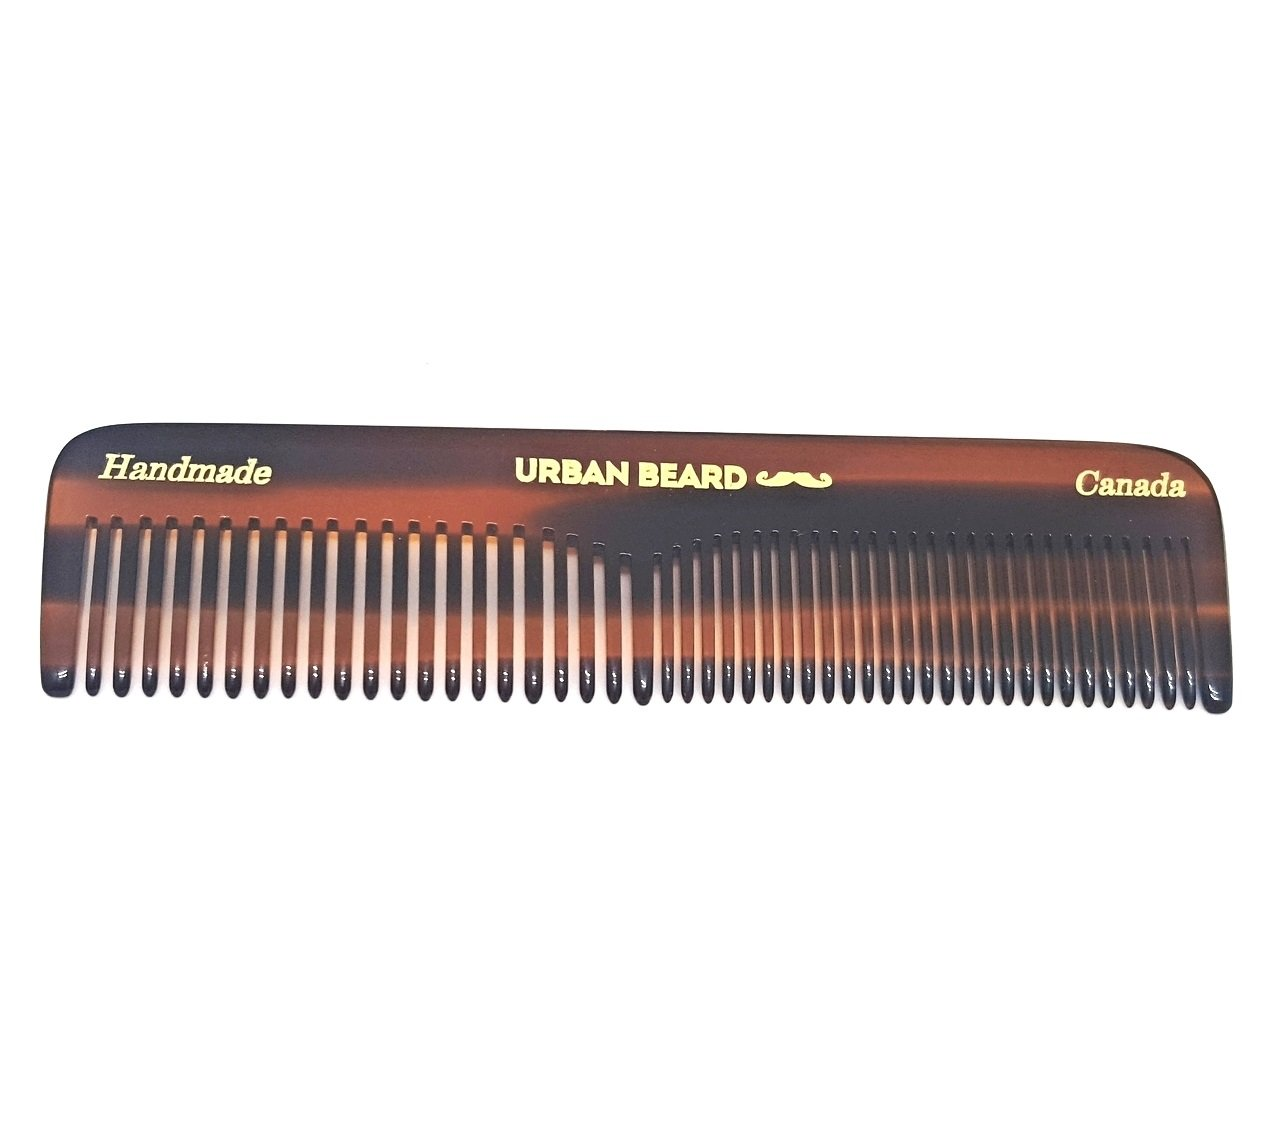 Urban Beard Beard Comb - Designed for Grooming the Toughest Beards - Canada # 1 Grooming Line